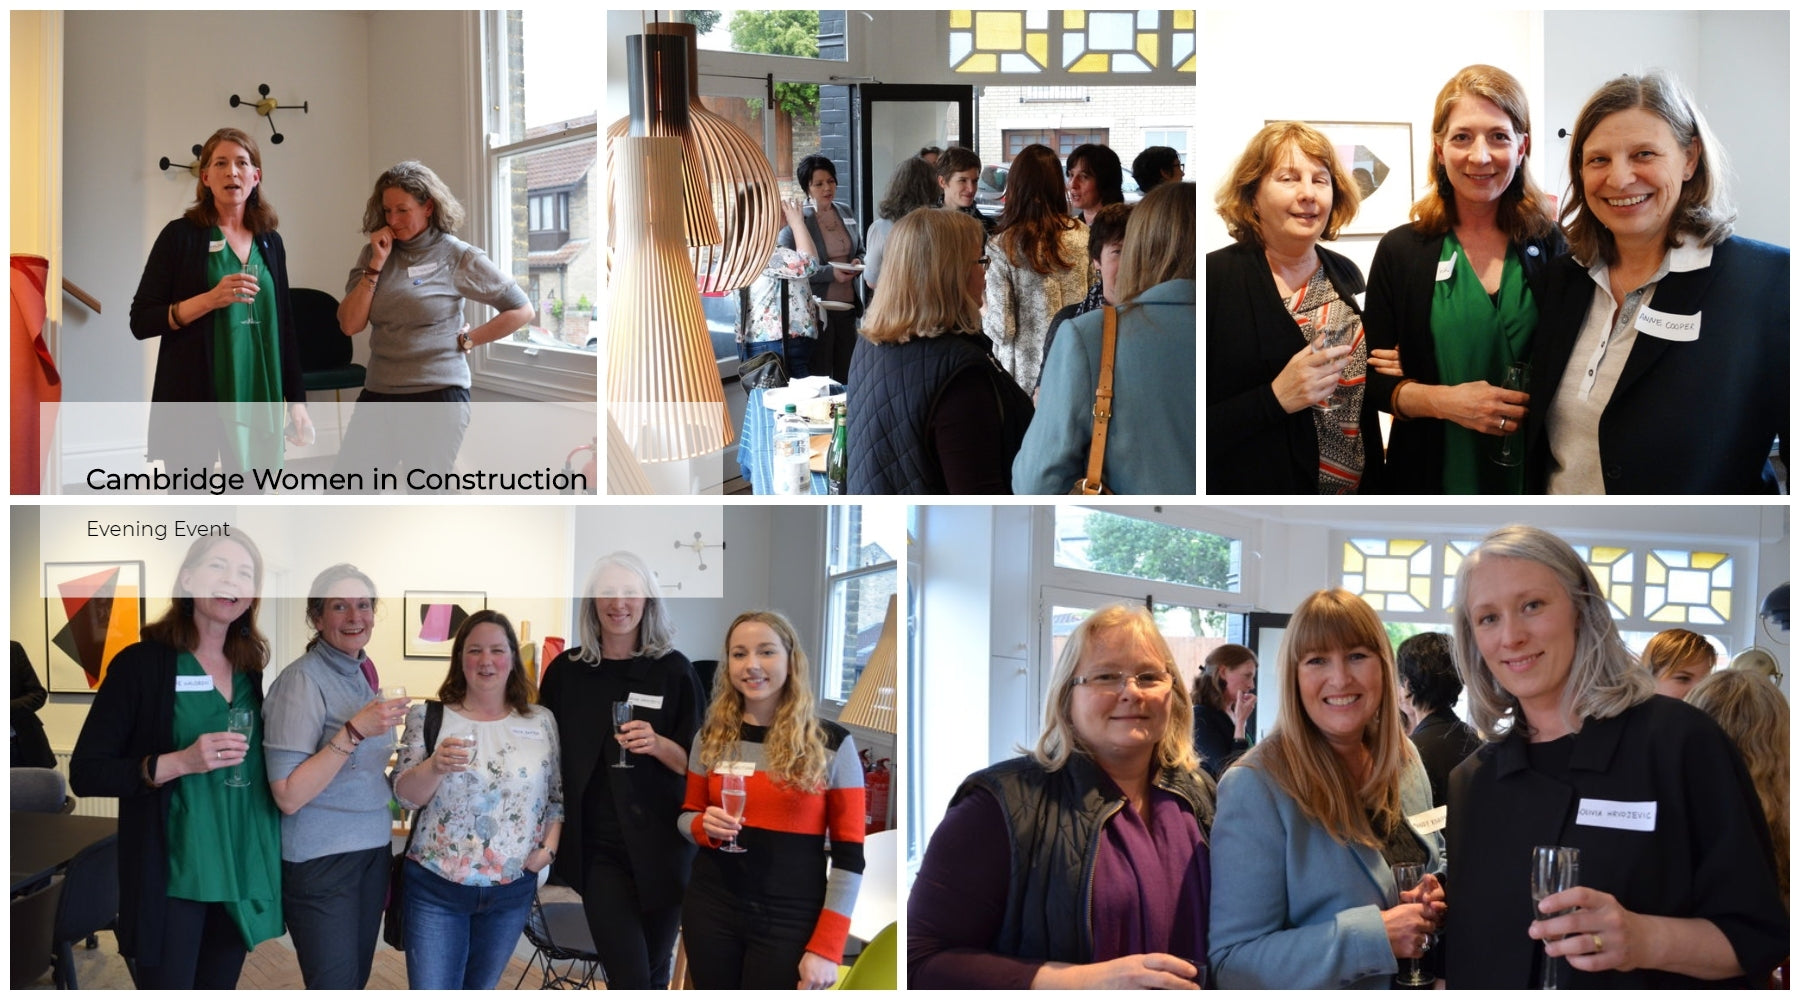 Cambridge Women in Construction Evening